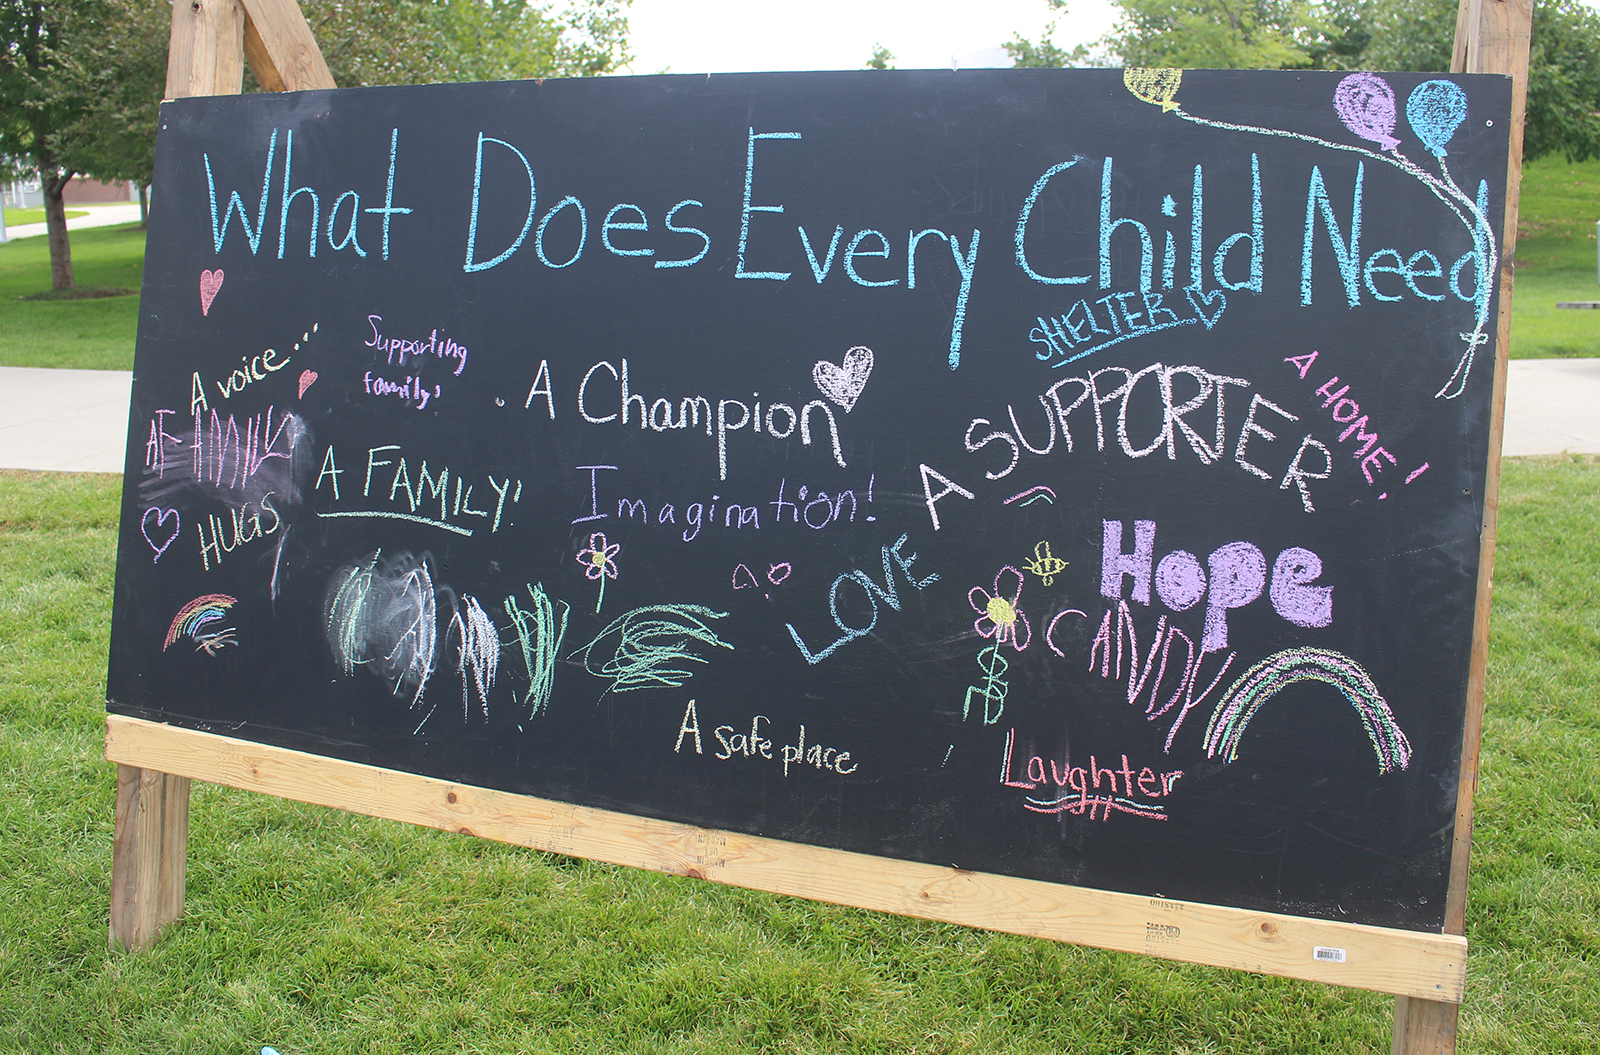 A sign at CASA for Douglas County's Superhero Festival invites guests to share their views on what children need. (Photo by Scott Stewart)